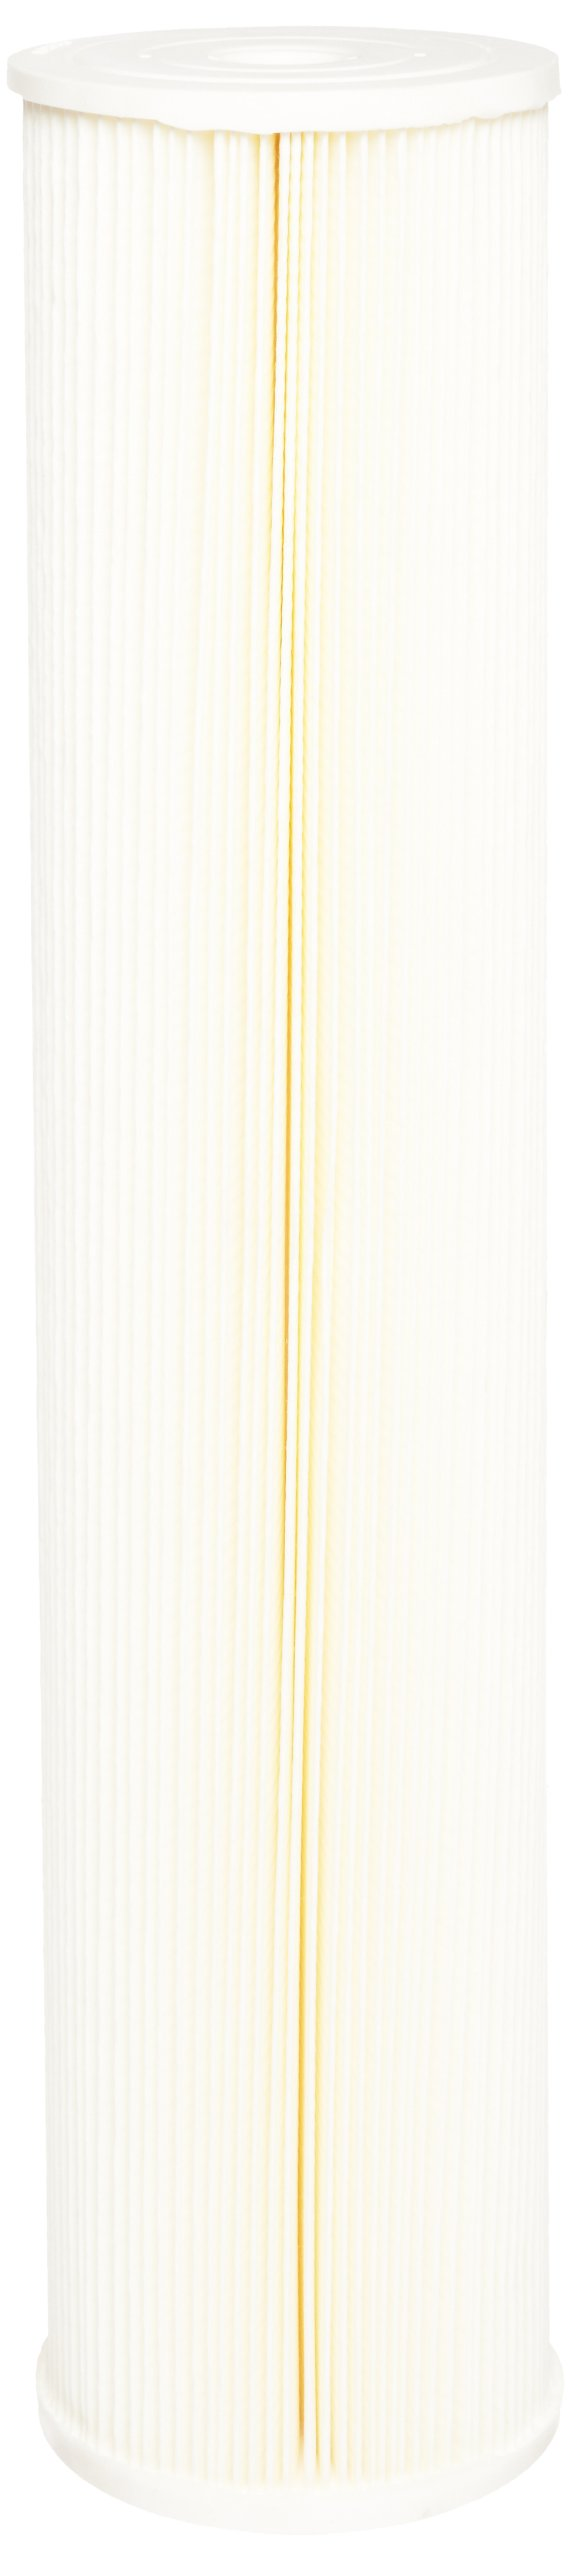 Pentek ECP5-20BB Pleated Cellulose Polyester Filter Cartridge, 20'' x 4-1/2'', 5 Microns by Pentek